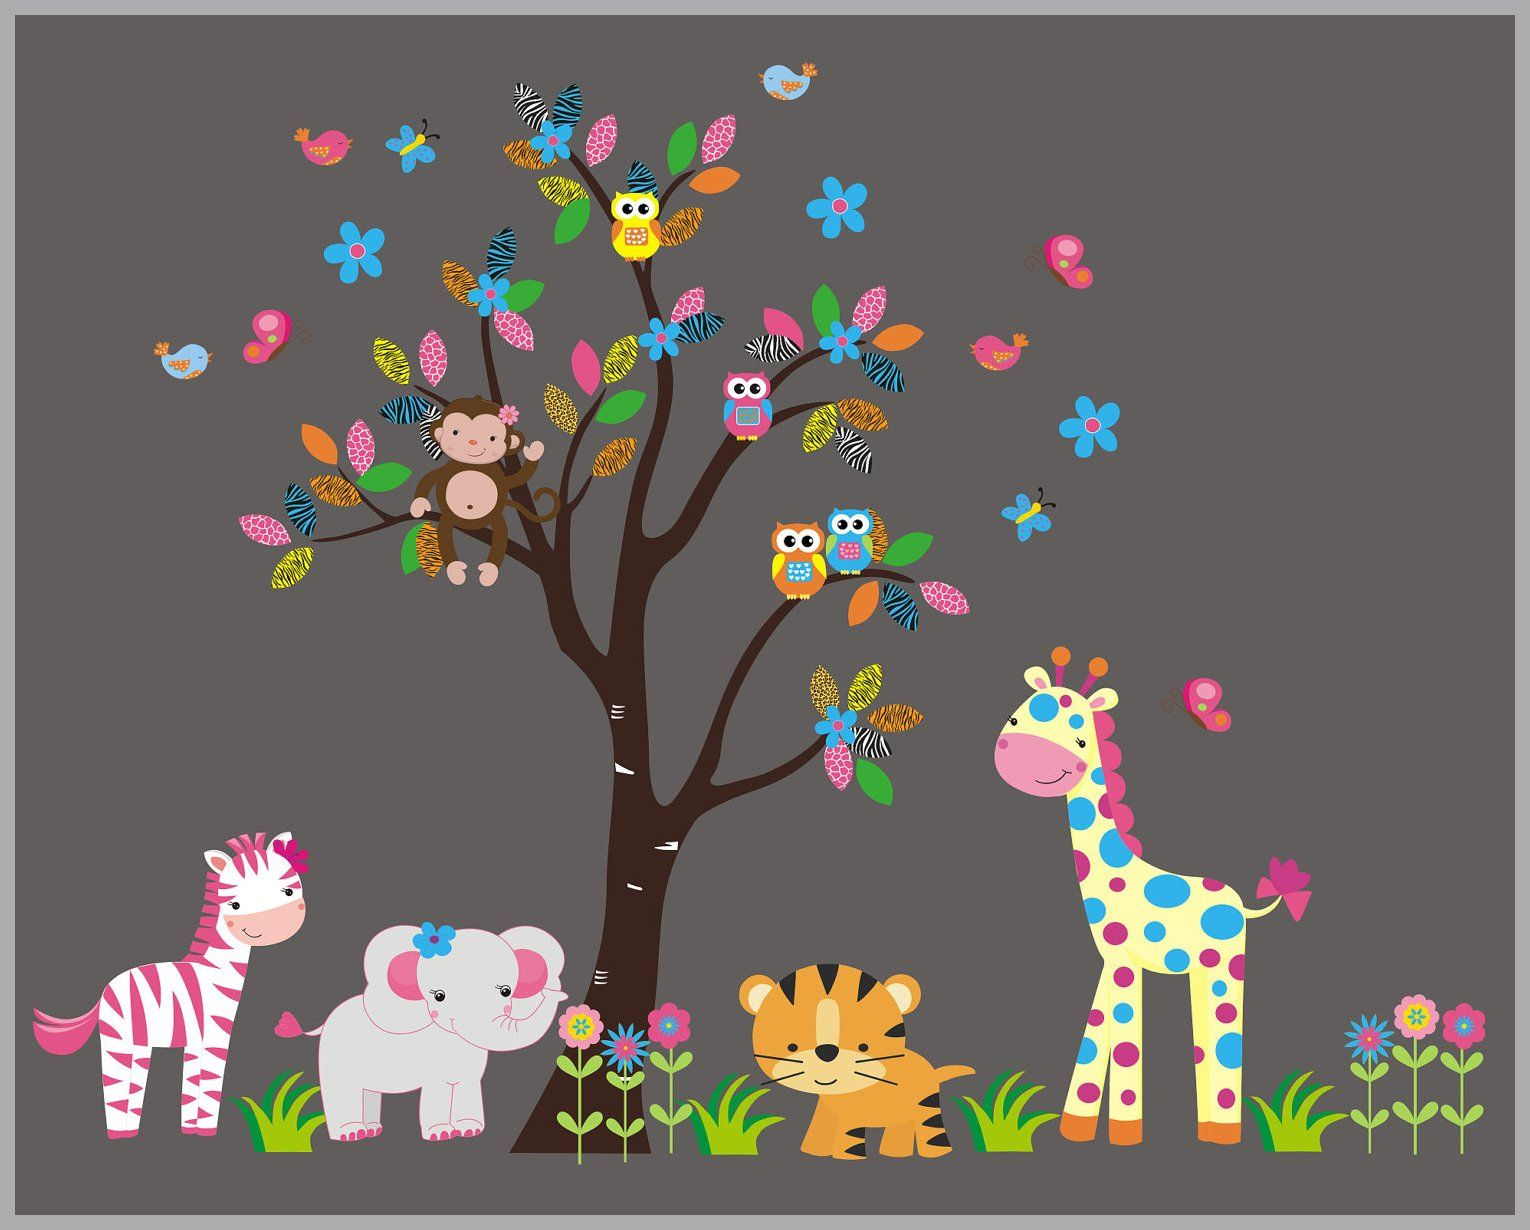 Fun Color Wall Decals Cute Animal Wall Stickers Peel And Stick Nursery Decals Nature Wall Art Zoo Animal Wall Mural 85 X 105 Baby Wall Decals Animal Wall Decals Elephant Decal